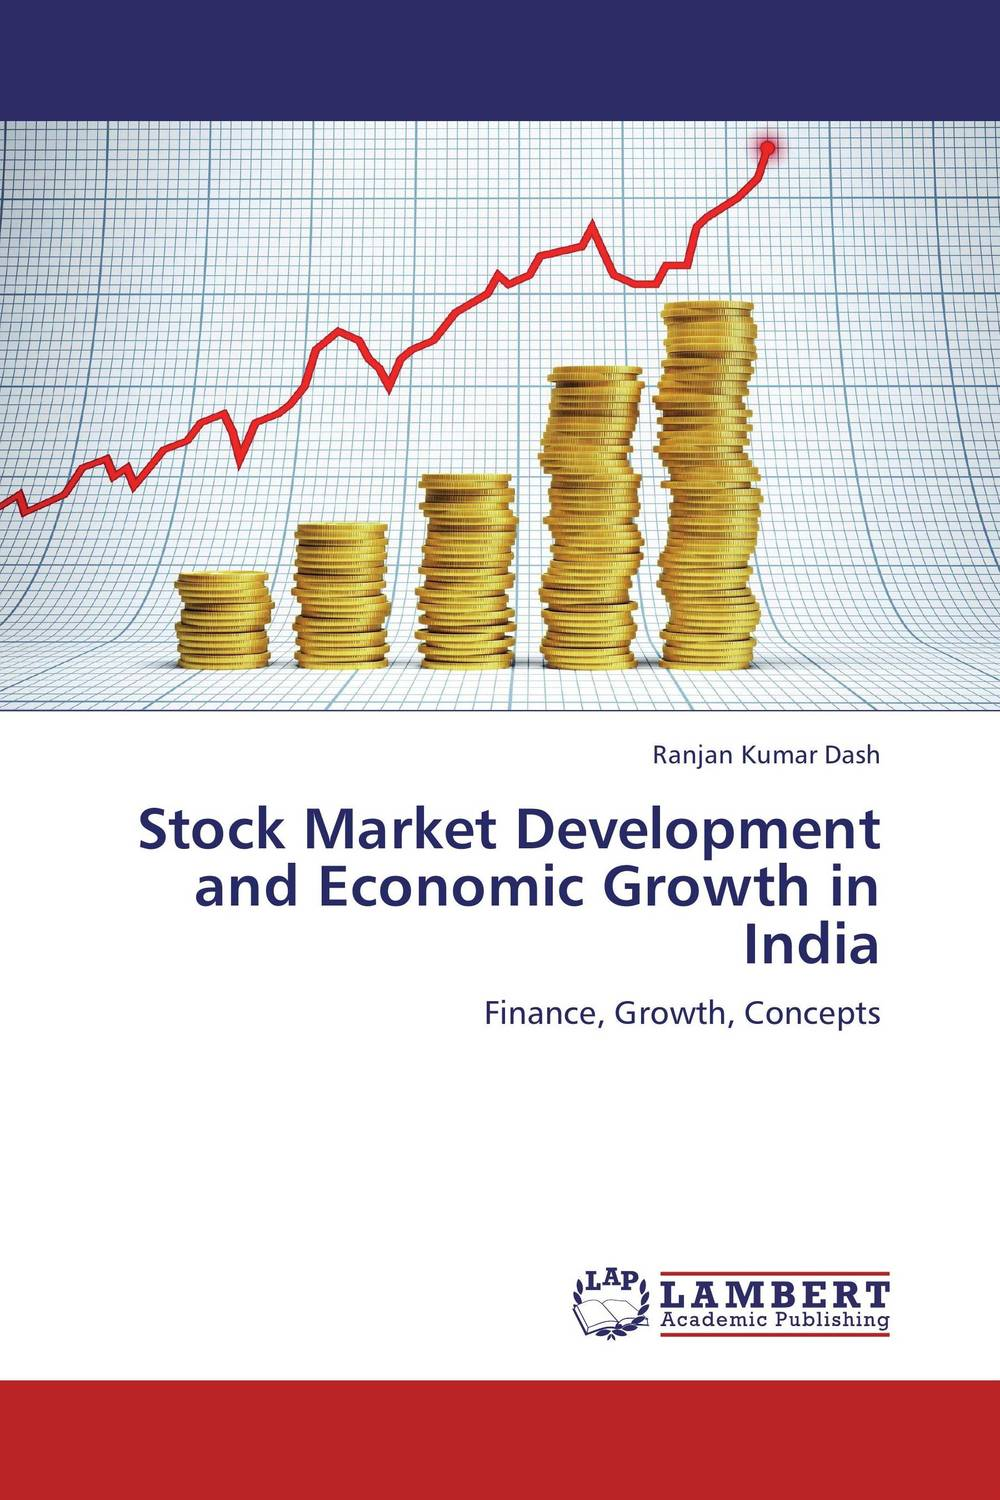 Stock Market Development and Economic Growth in India patent intensity and economic growth